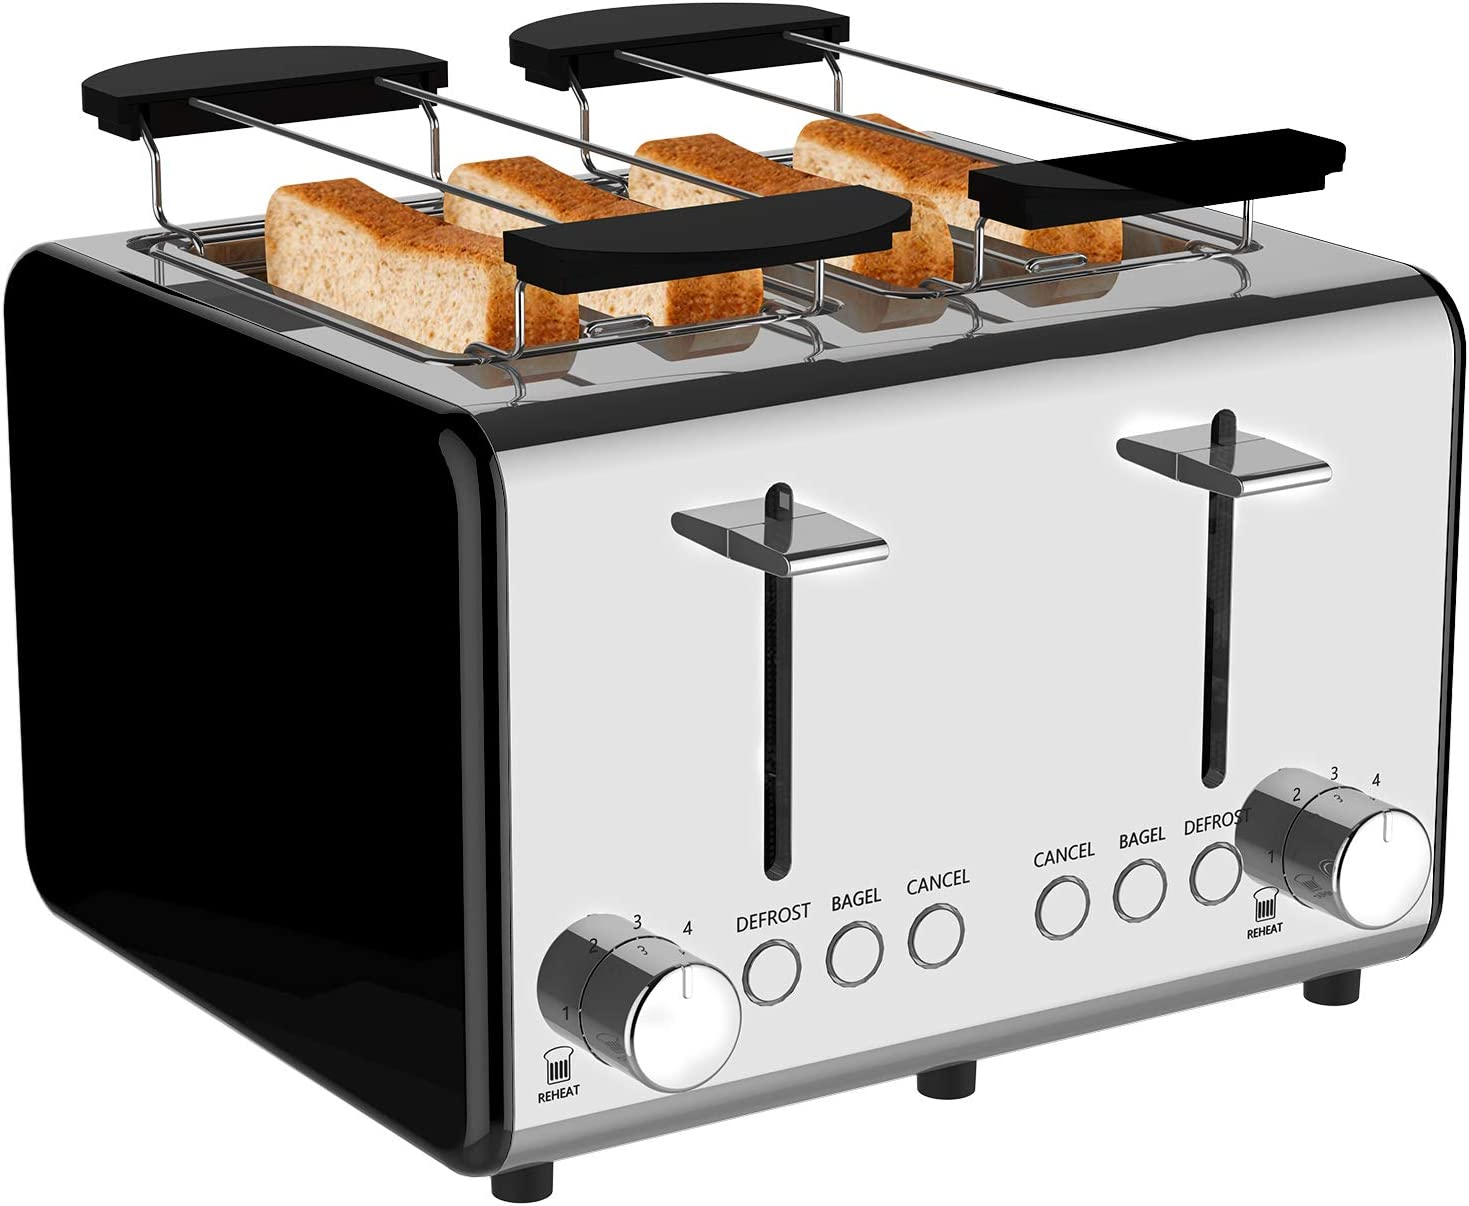 Toaster 4 slice,Extra-Wide Slot Toaster,6 Bread Shade Settings,Stainless Steel Toaster with Bagel,Reheat,Cancel, Defrost Function,Removable Crumb Tray (toaster 4 slice black)